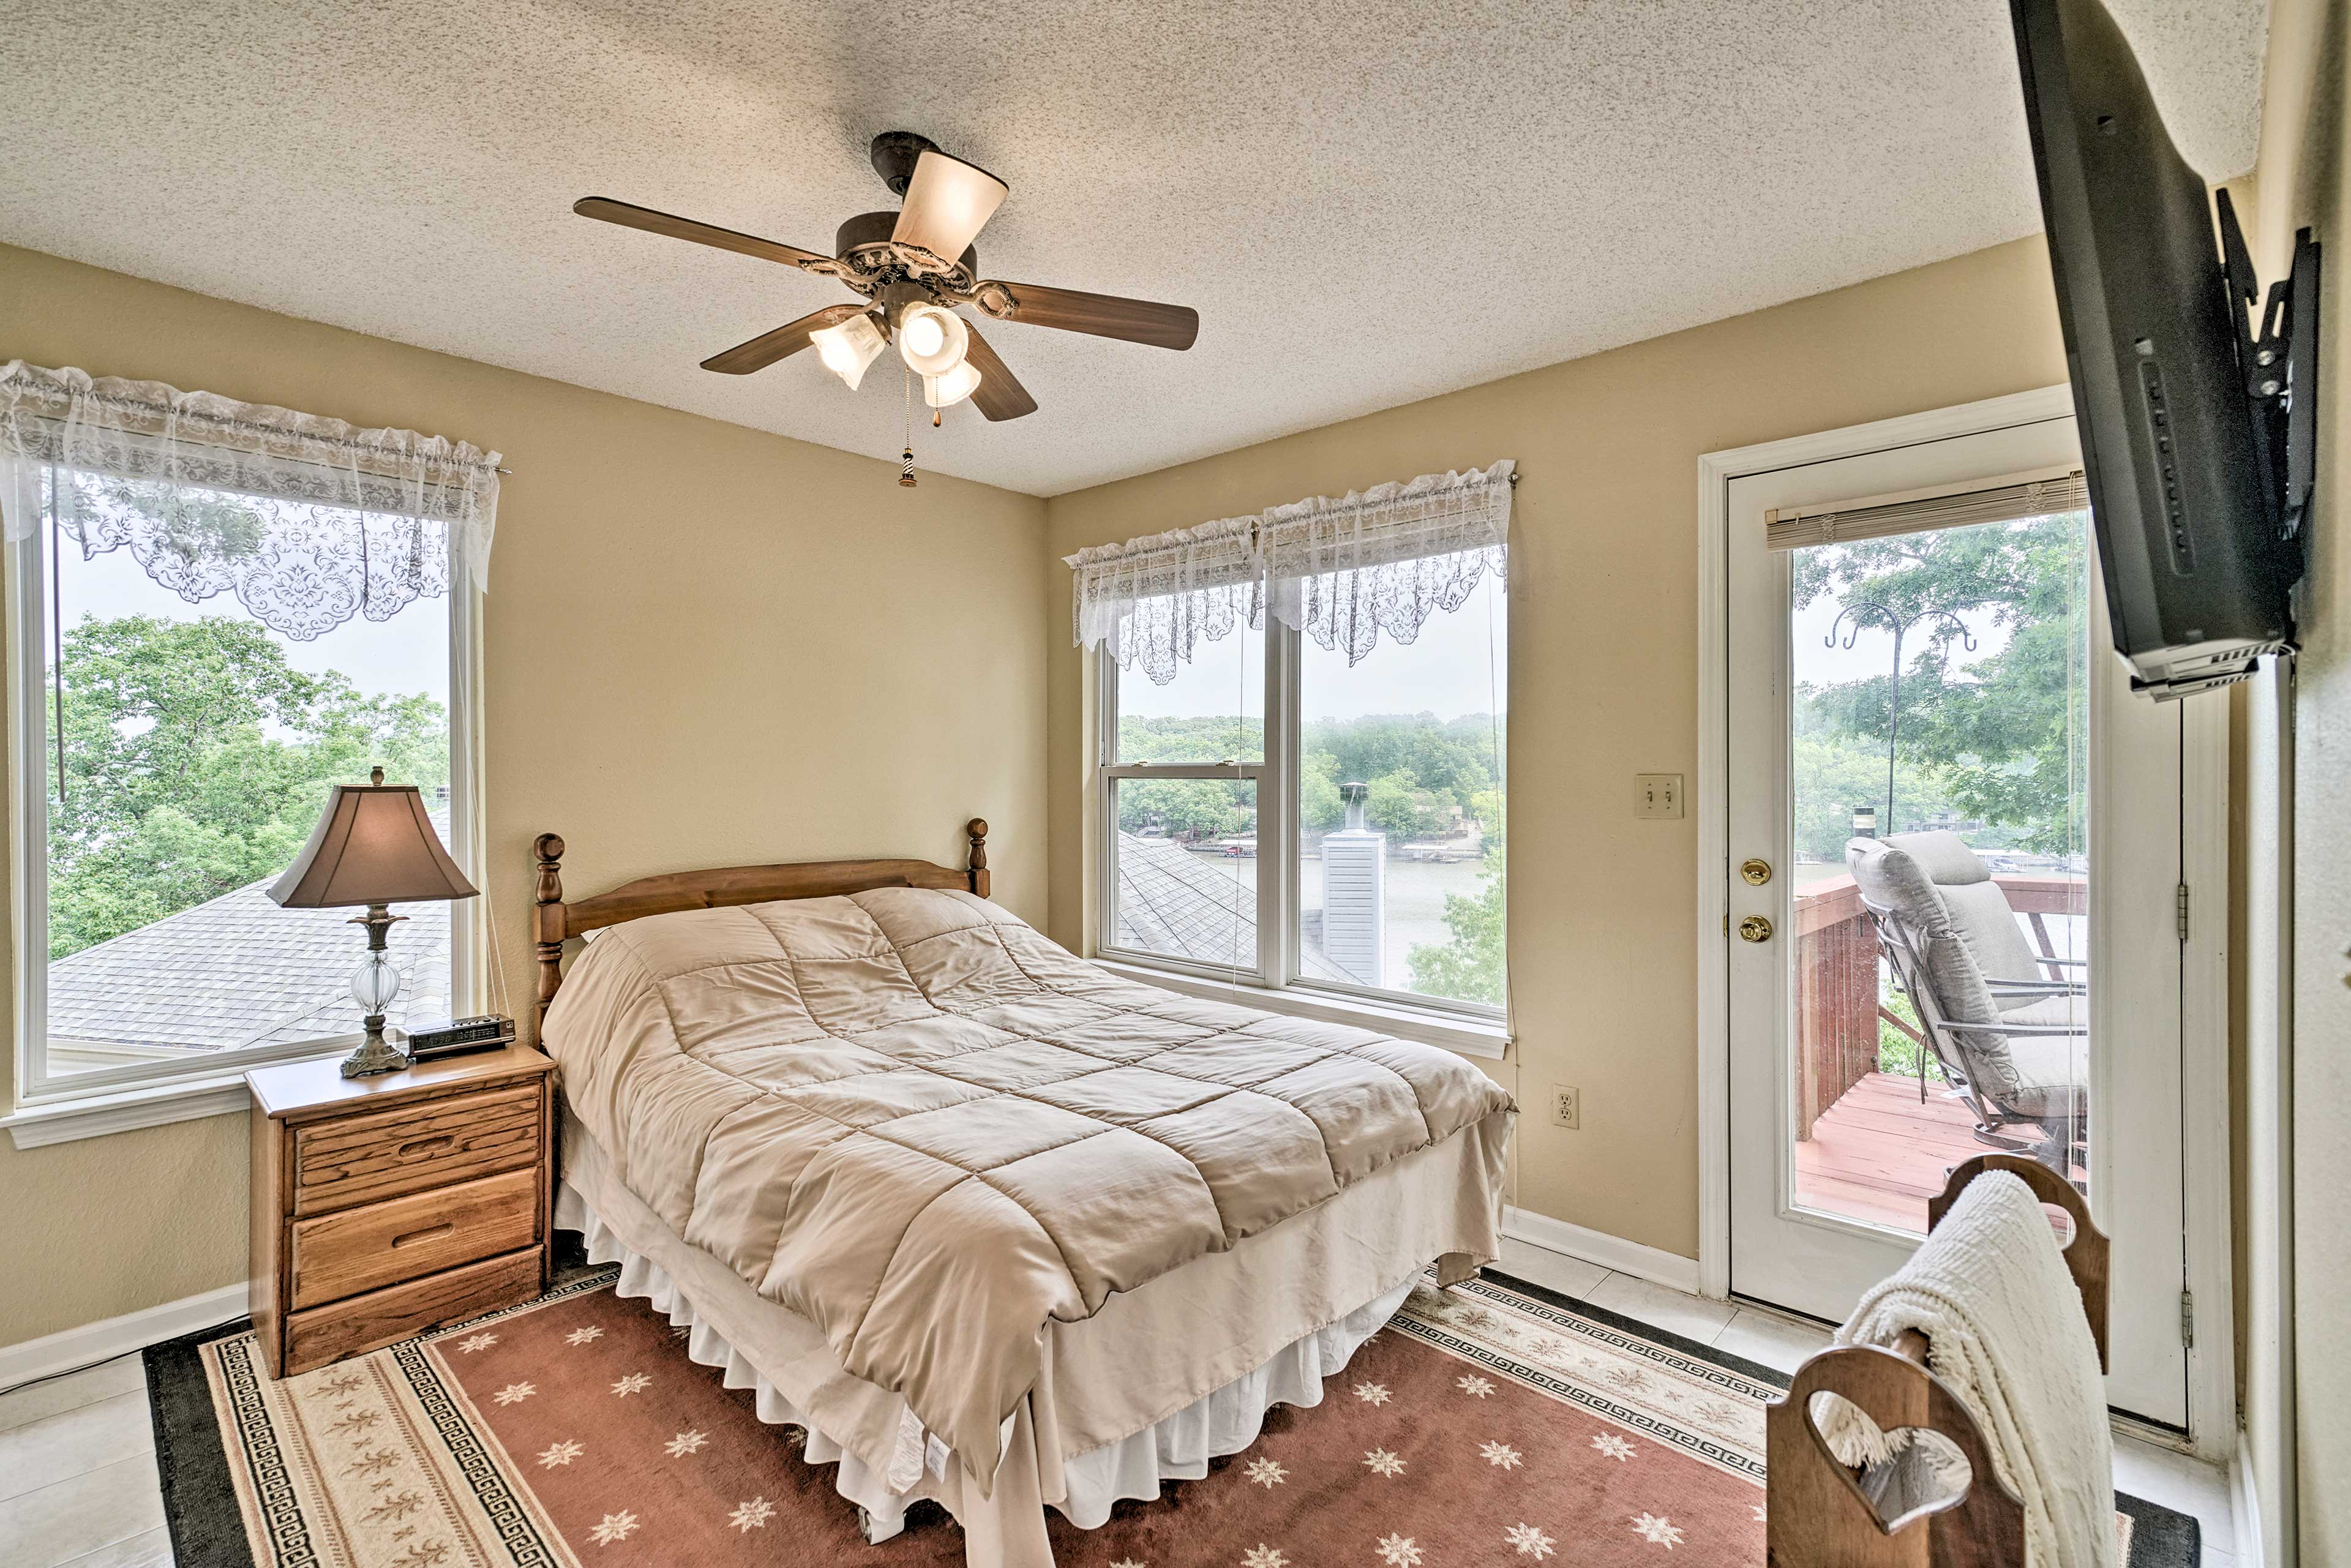 Sleepy? Retire to this bedroom featuring private deck access.